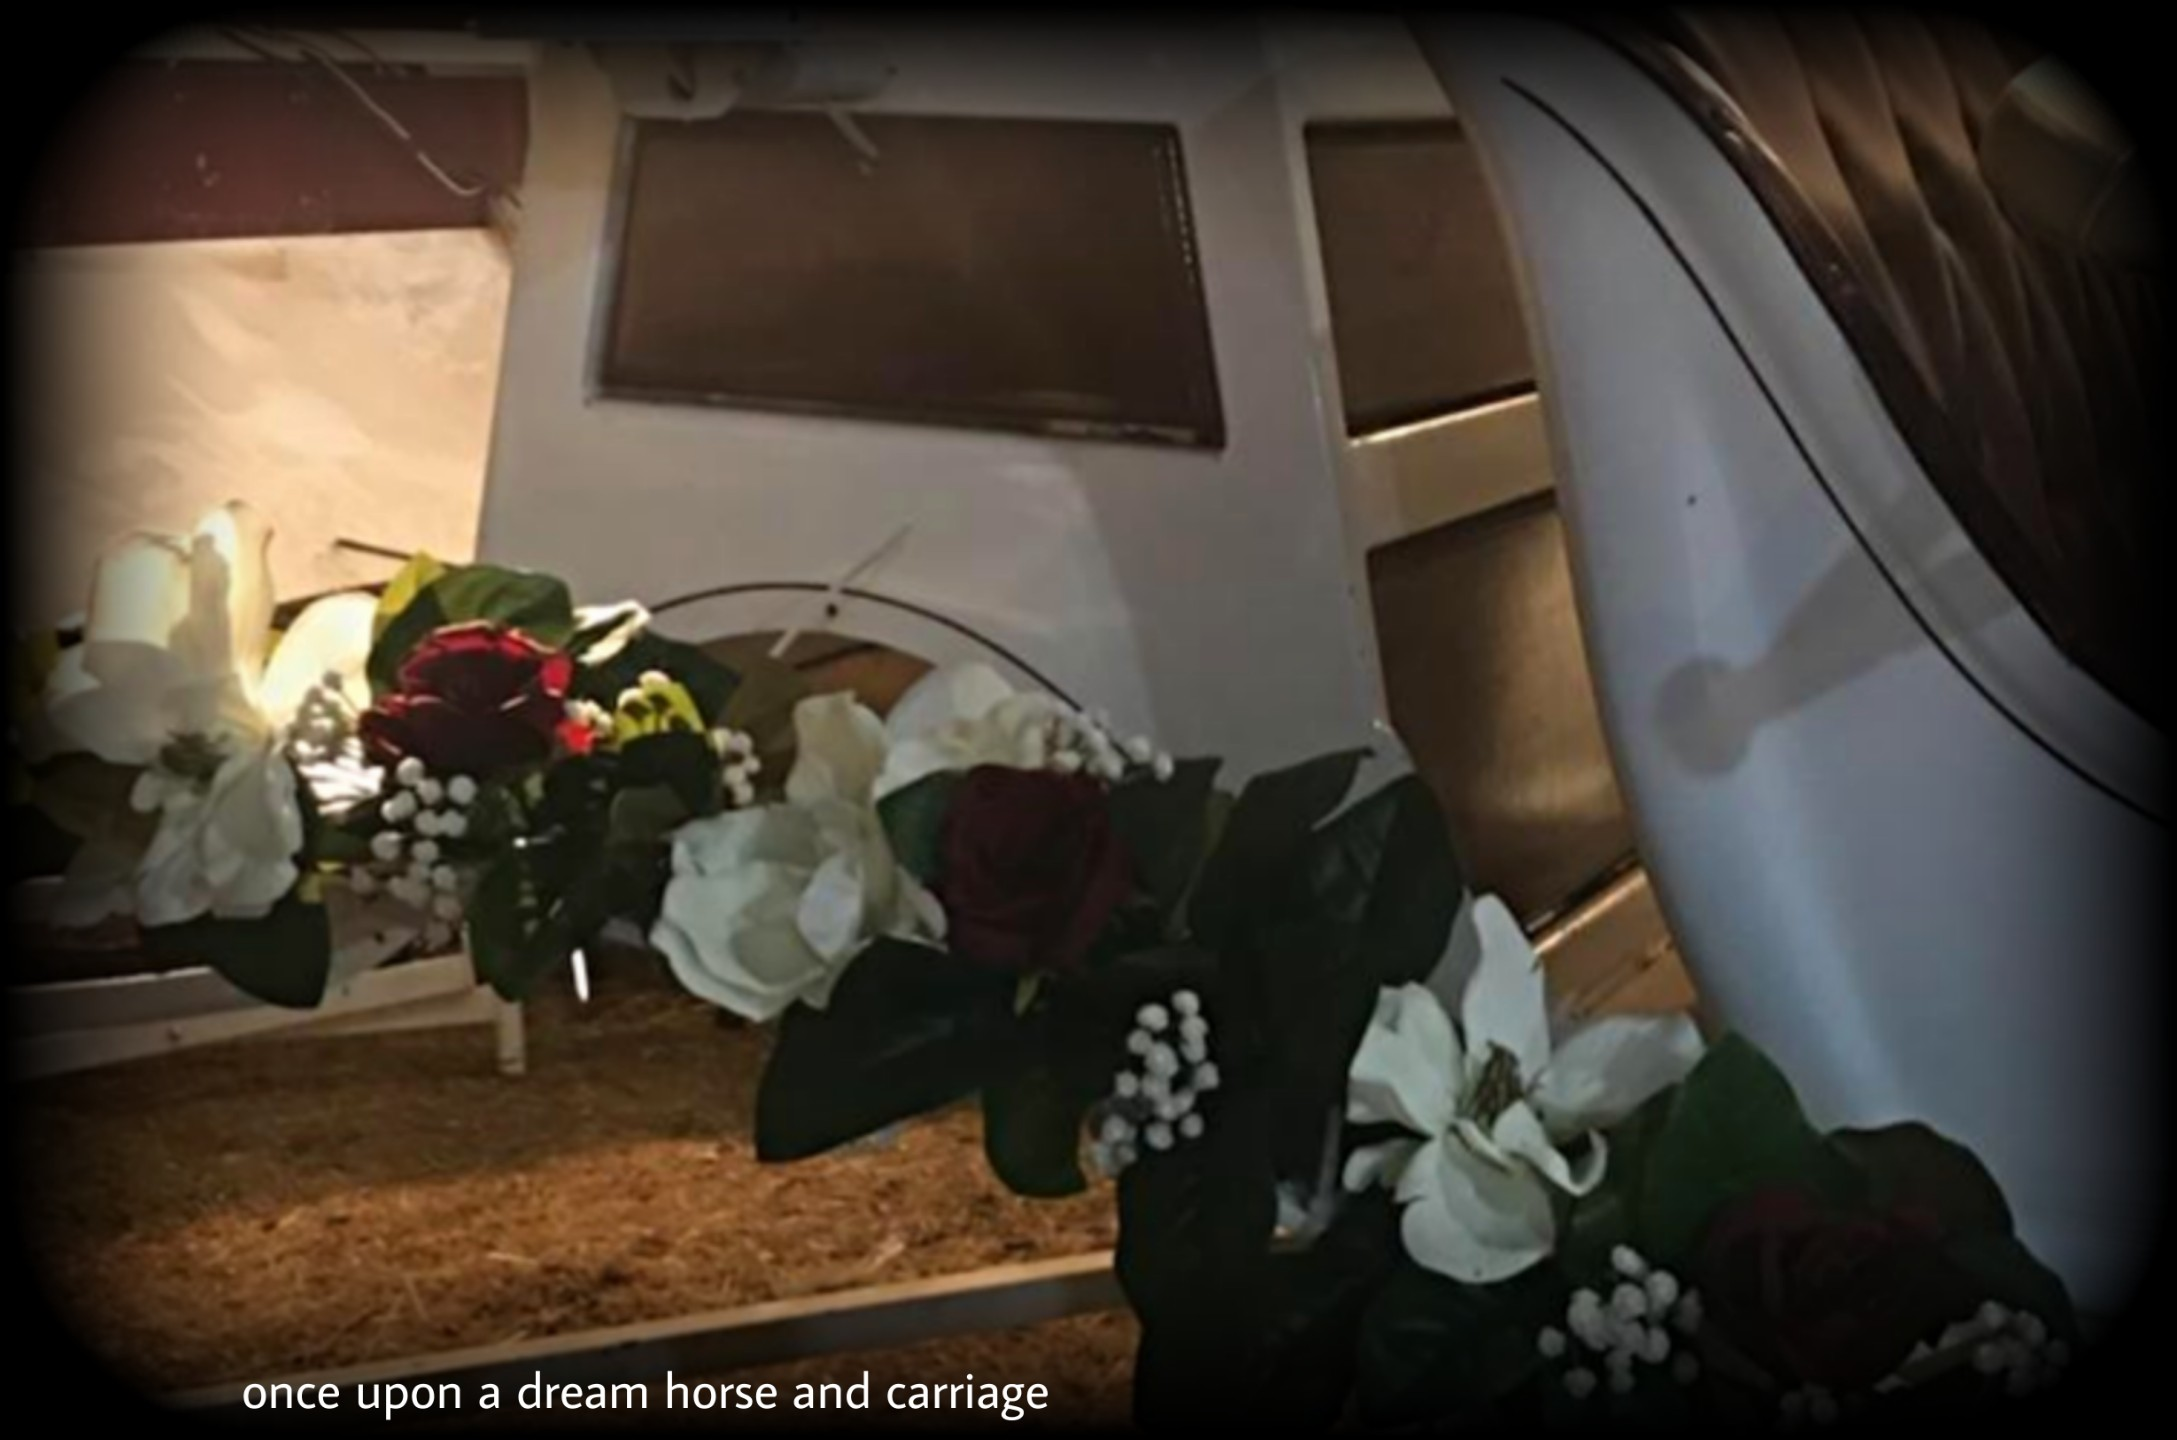 Carriage floral designs